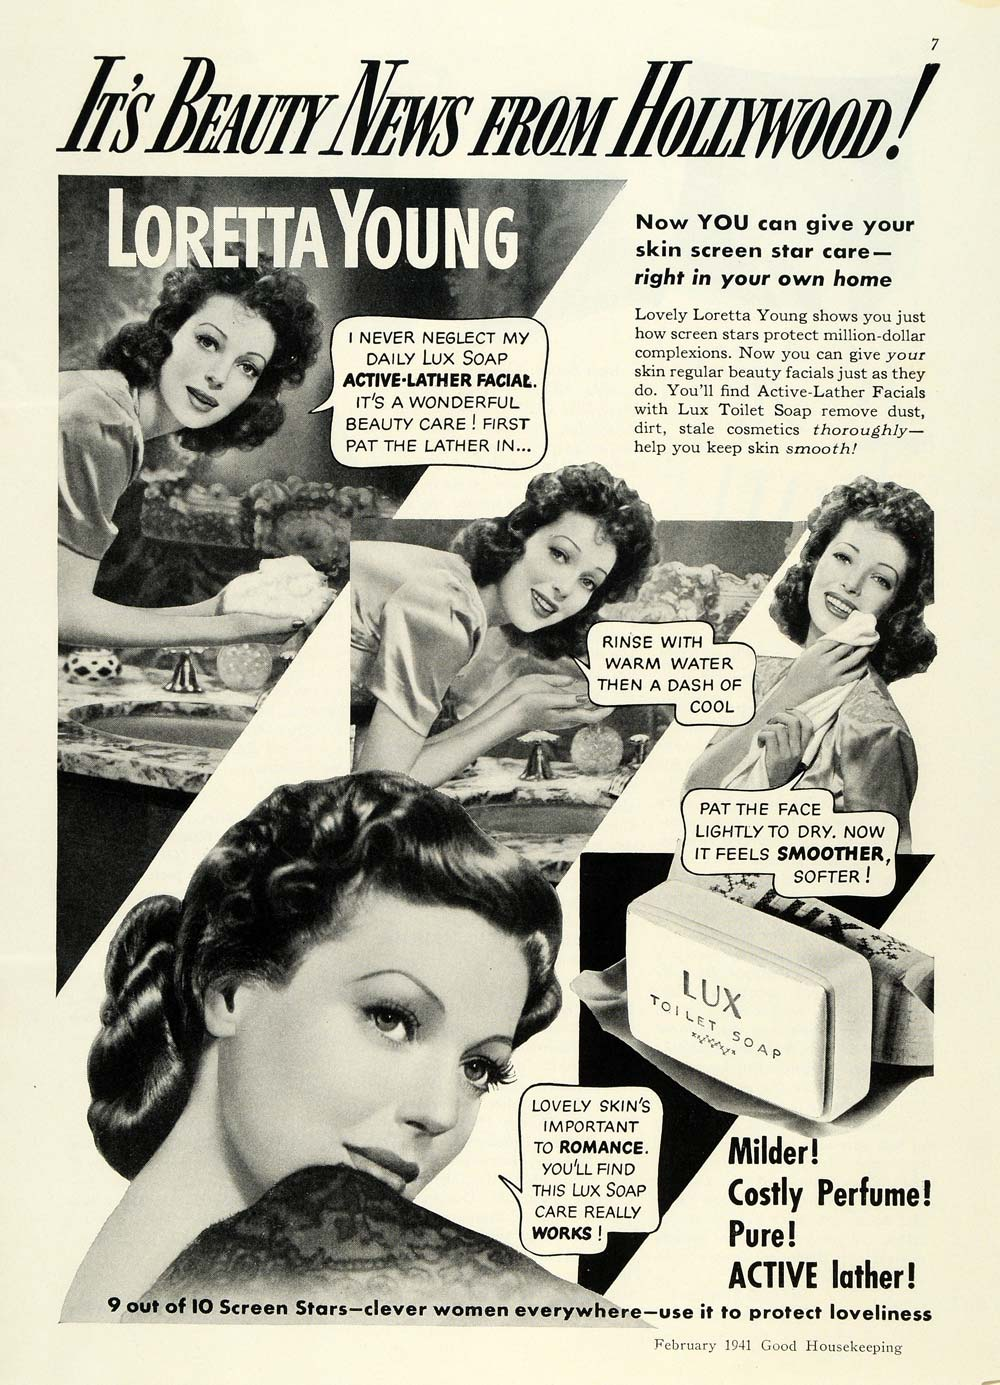 1941 Ad Loretta Young Lux Soap Bar Active Lather Facial - ORIGINAL GH4